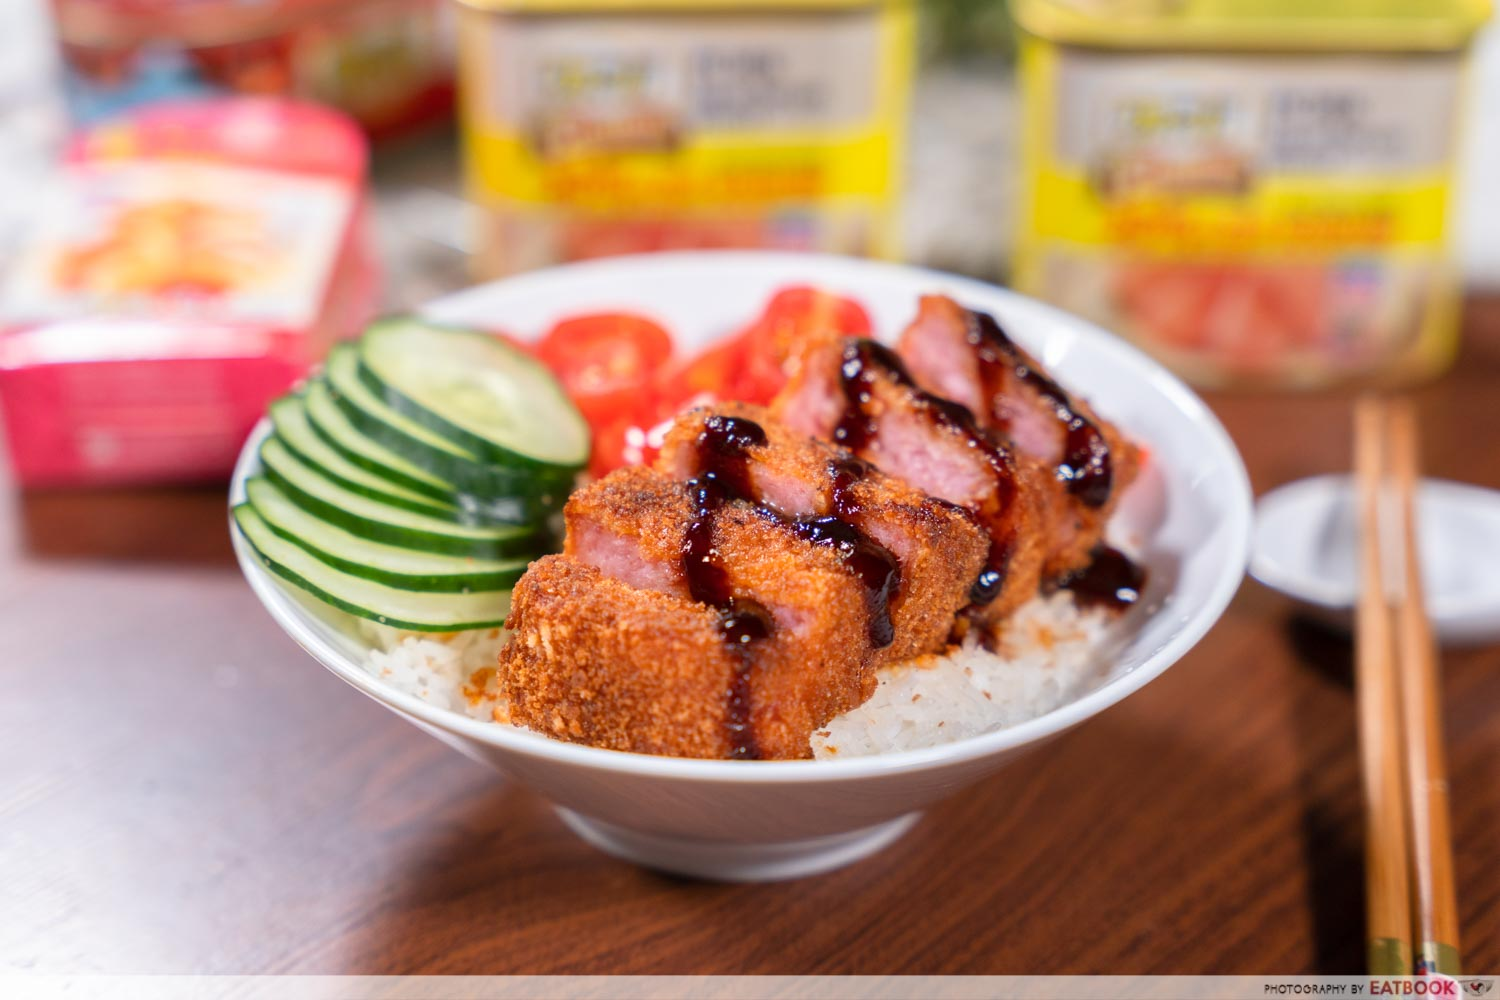 Canned food recipes - luncheon meat katsu don